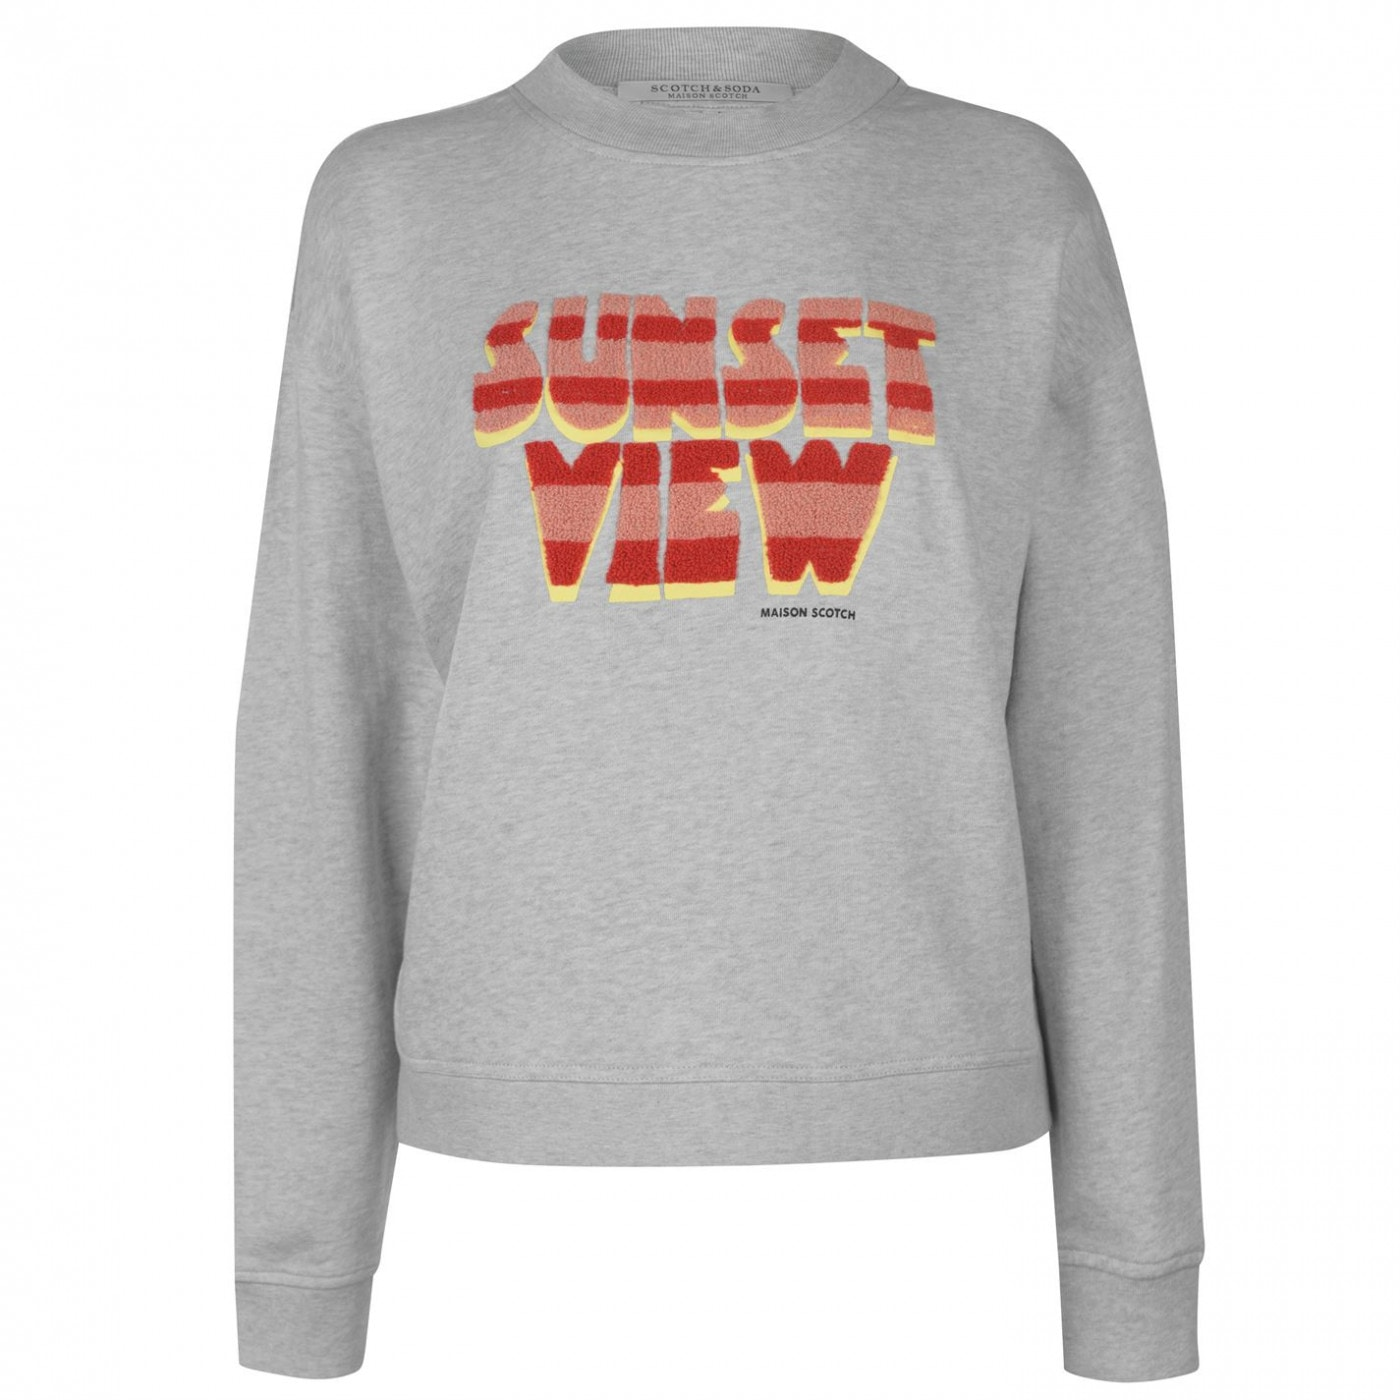 Scotch and Soda and Soda Sunset Crew Sweatshirt Ladies